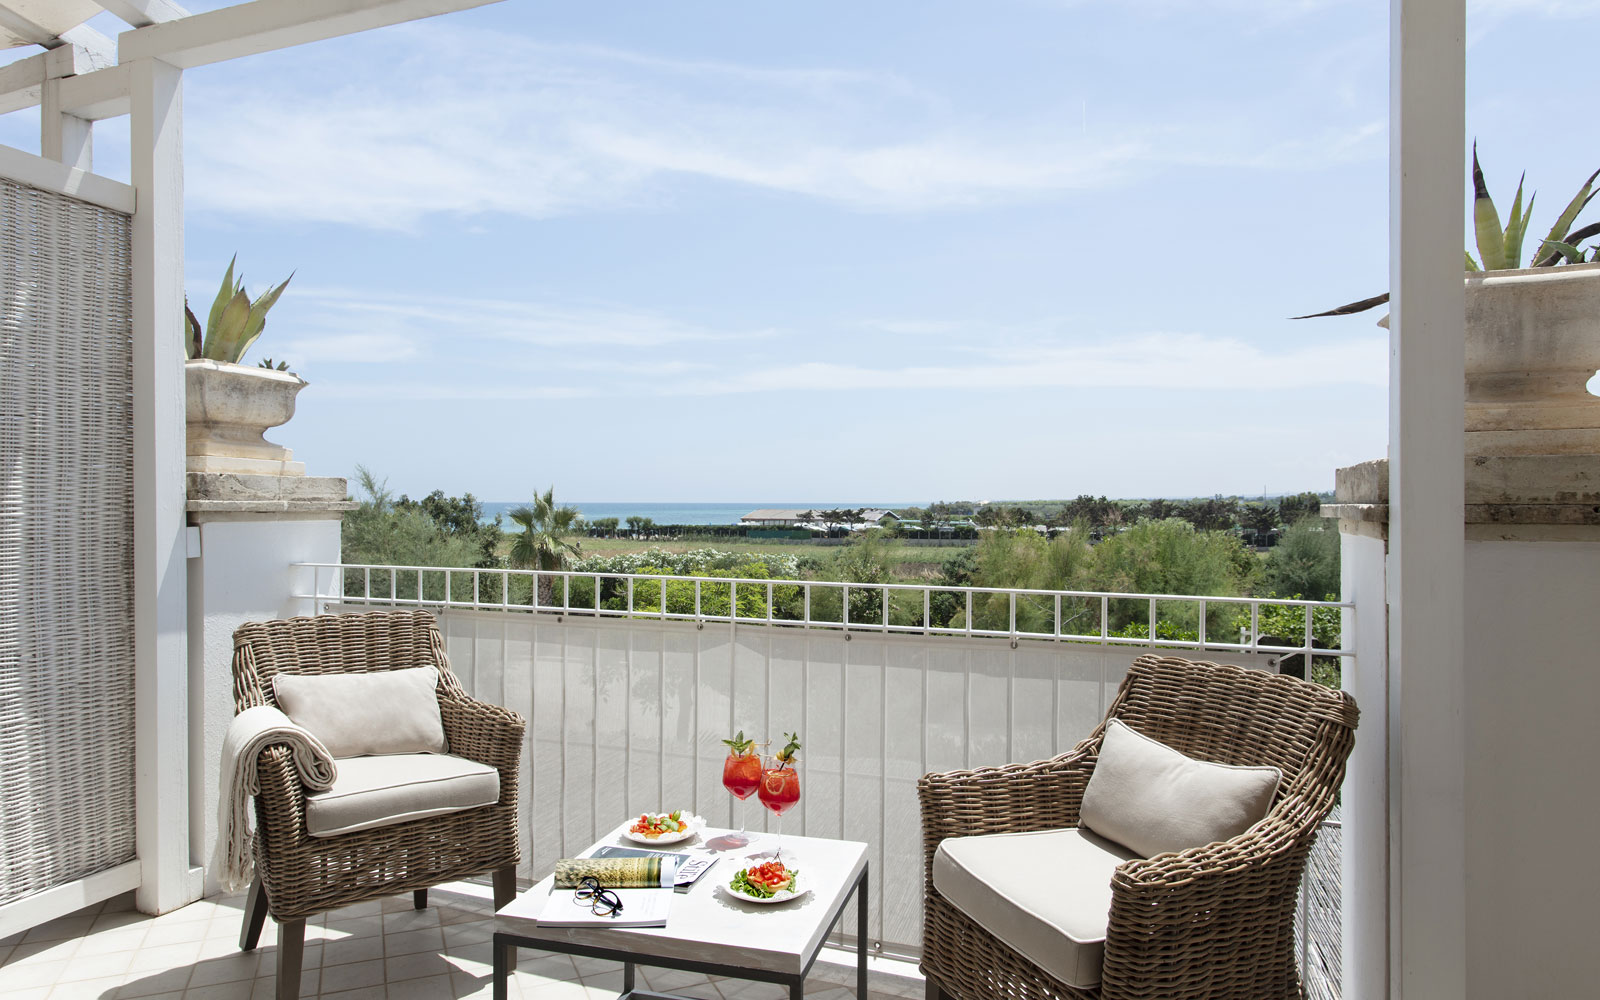 Canne Bianche Superior Room Terrace